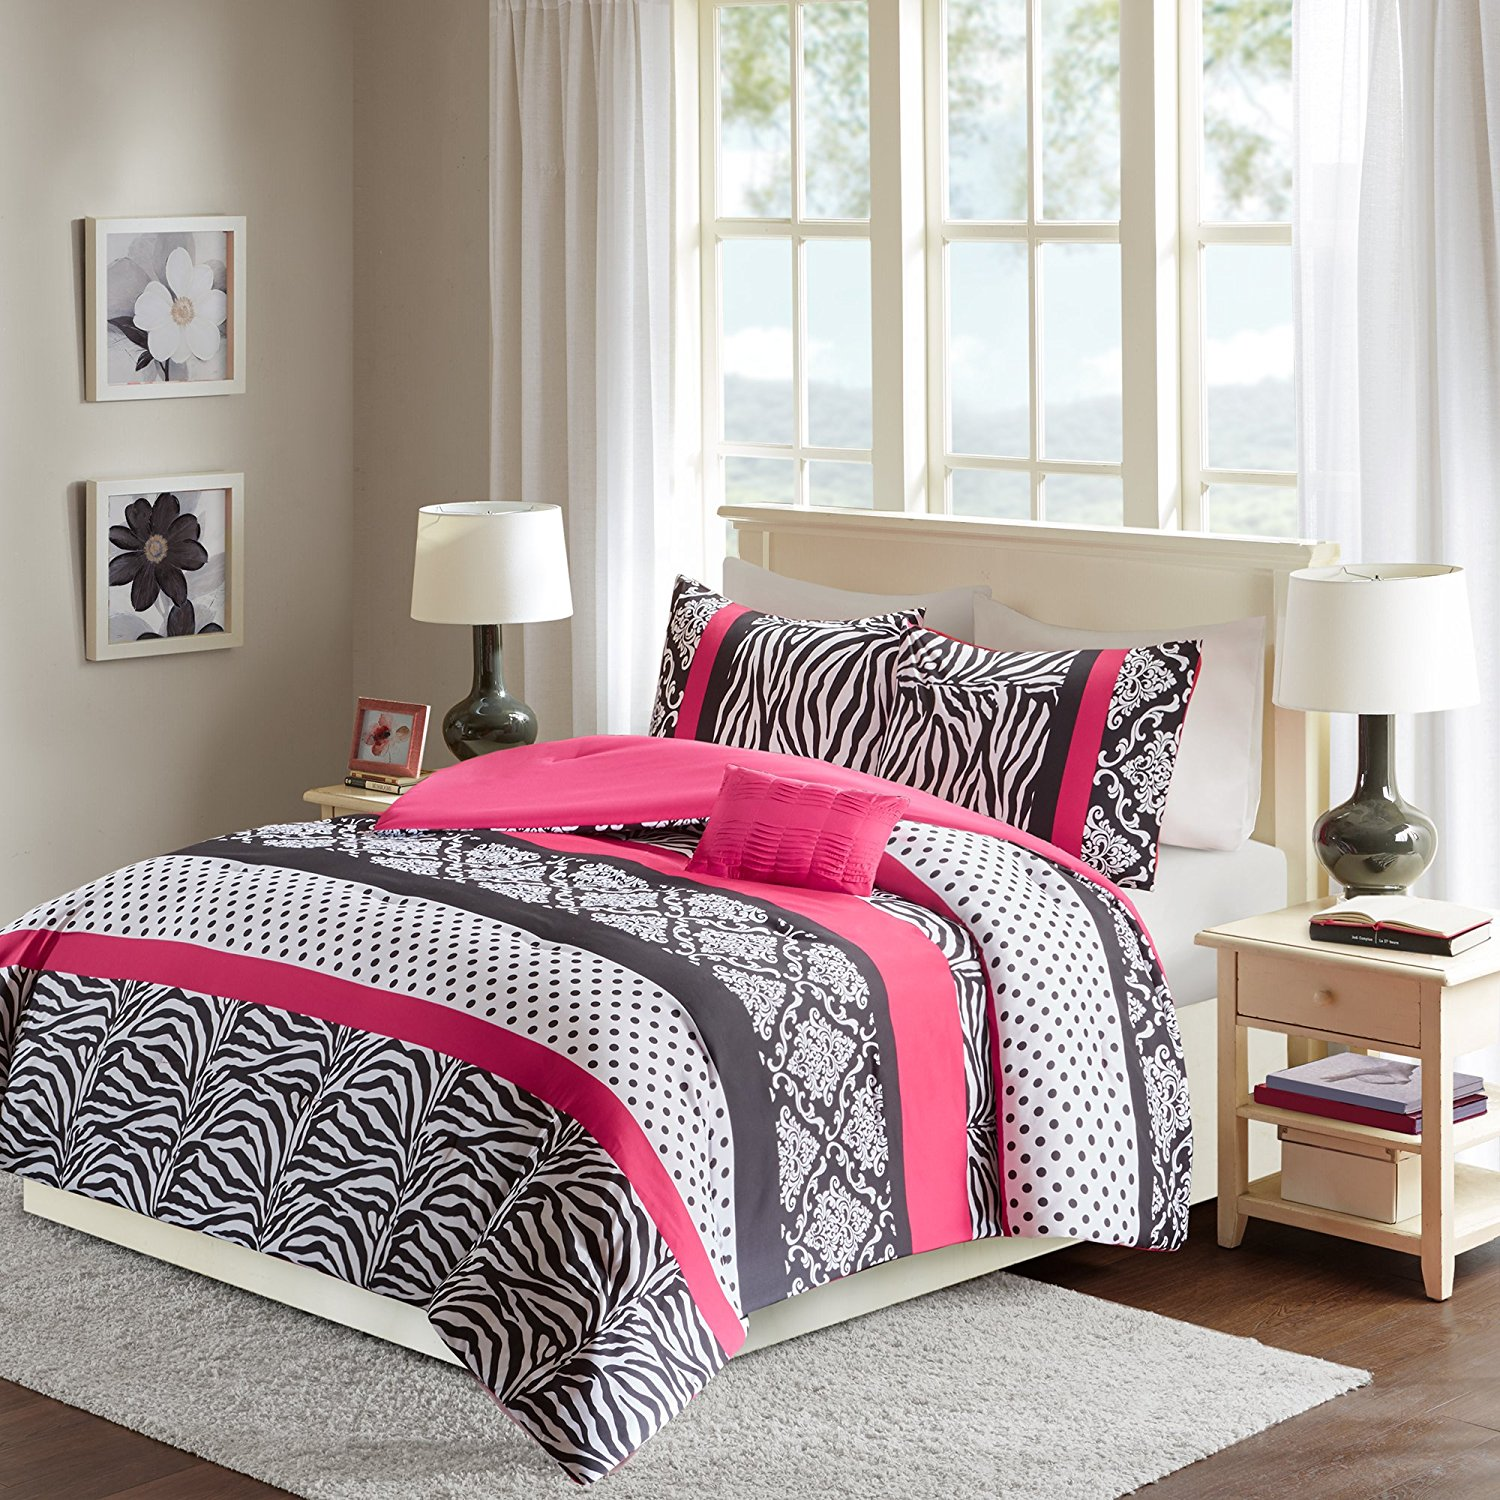 Comfort Spaces - Sally Comforter Set - 3 Piece - Hot Pink & Black - Zebra, Damask, Polka dot print - Twin/Twin XL Size, includes 1 Comforter, 1 Sham, 1 Decorative Pillow